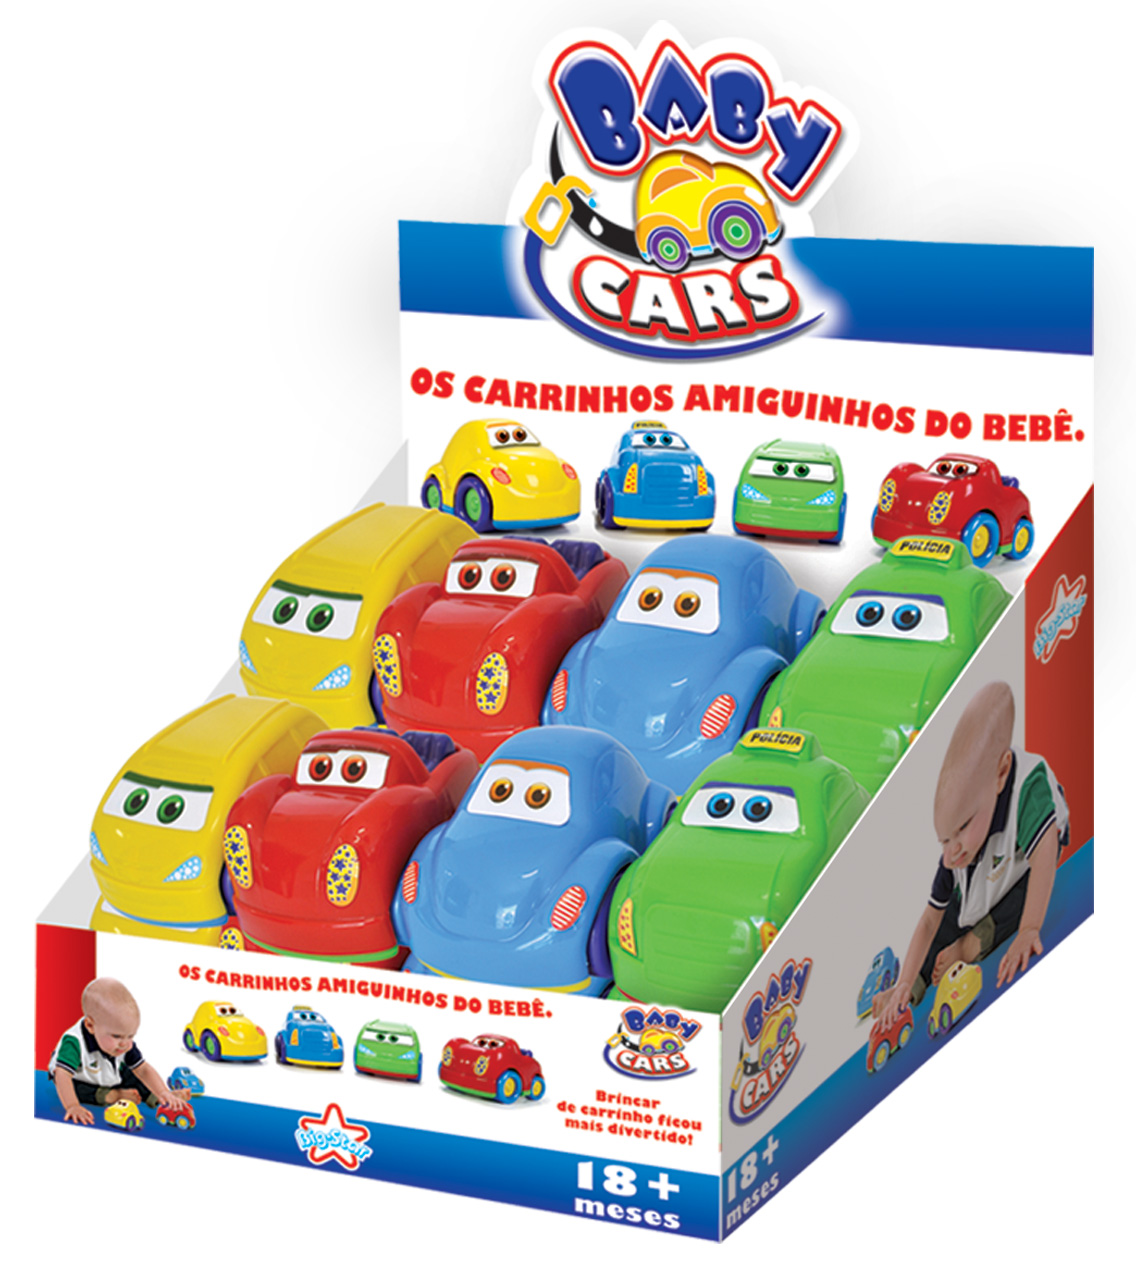 Baby Cars Display